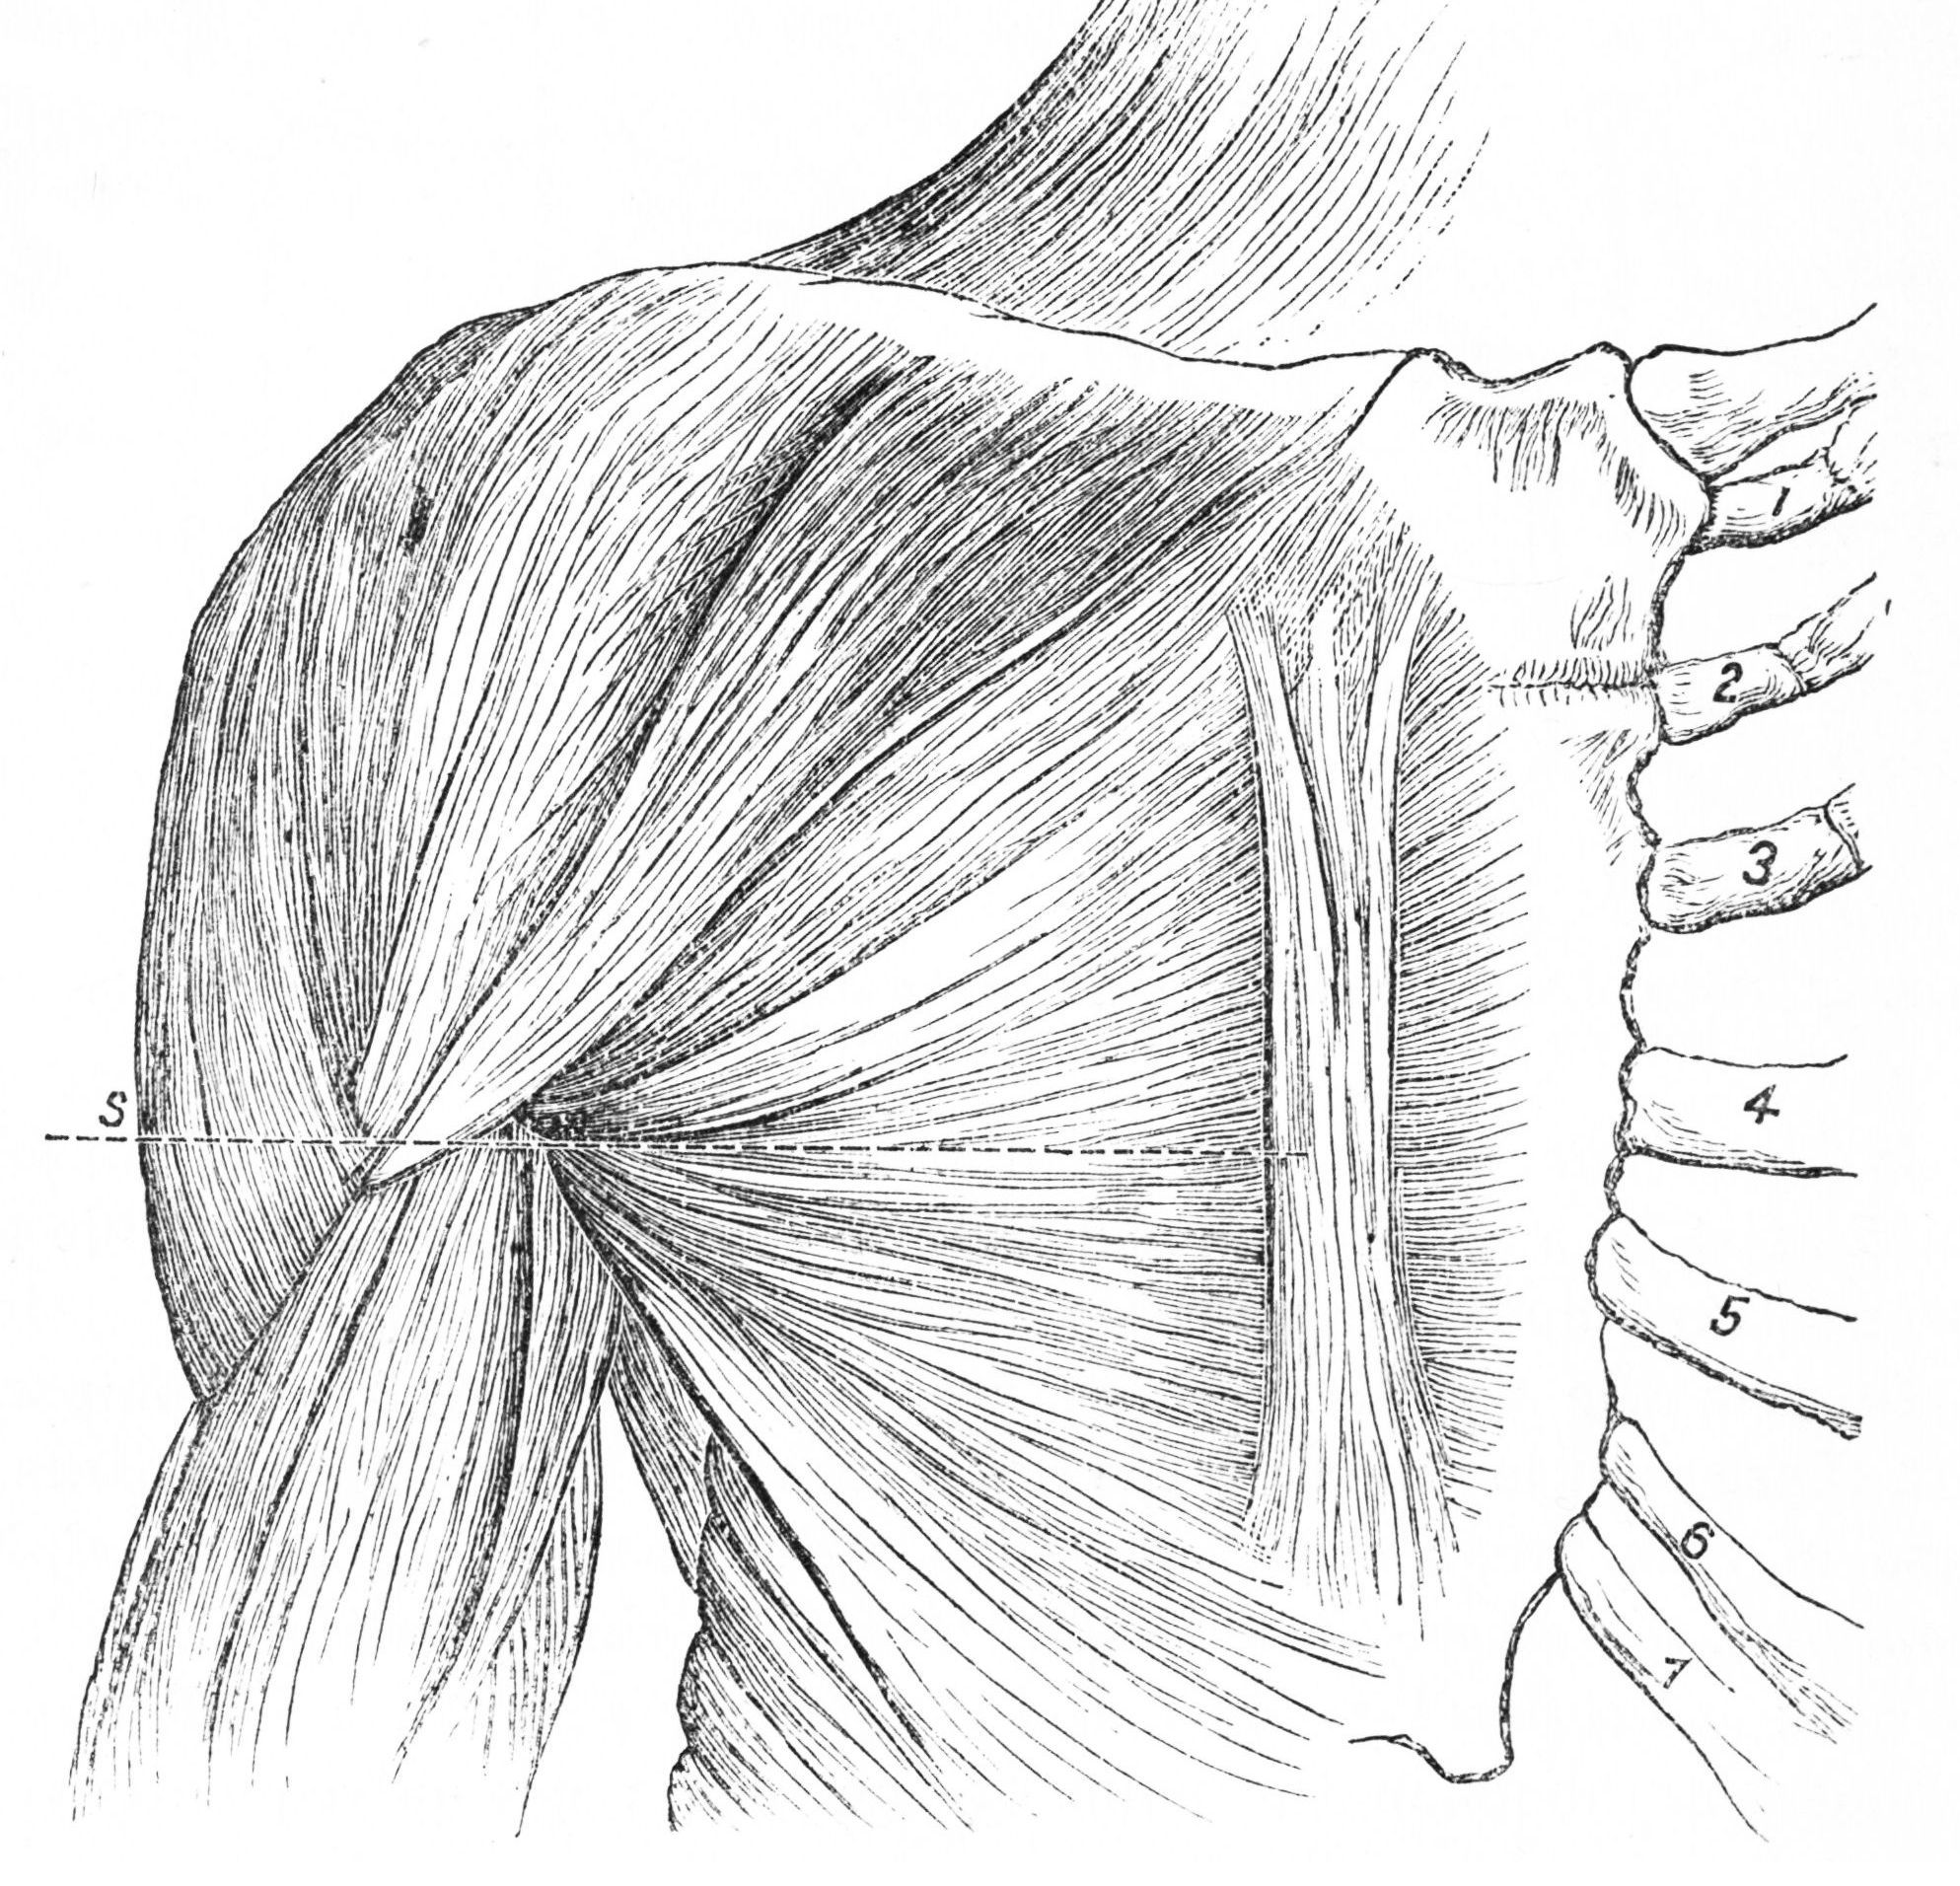 Illustration of the muscles in the chest and arm.